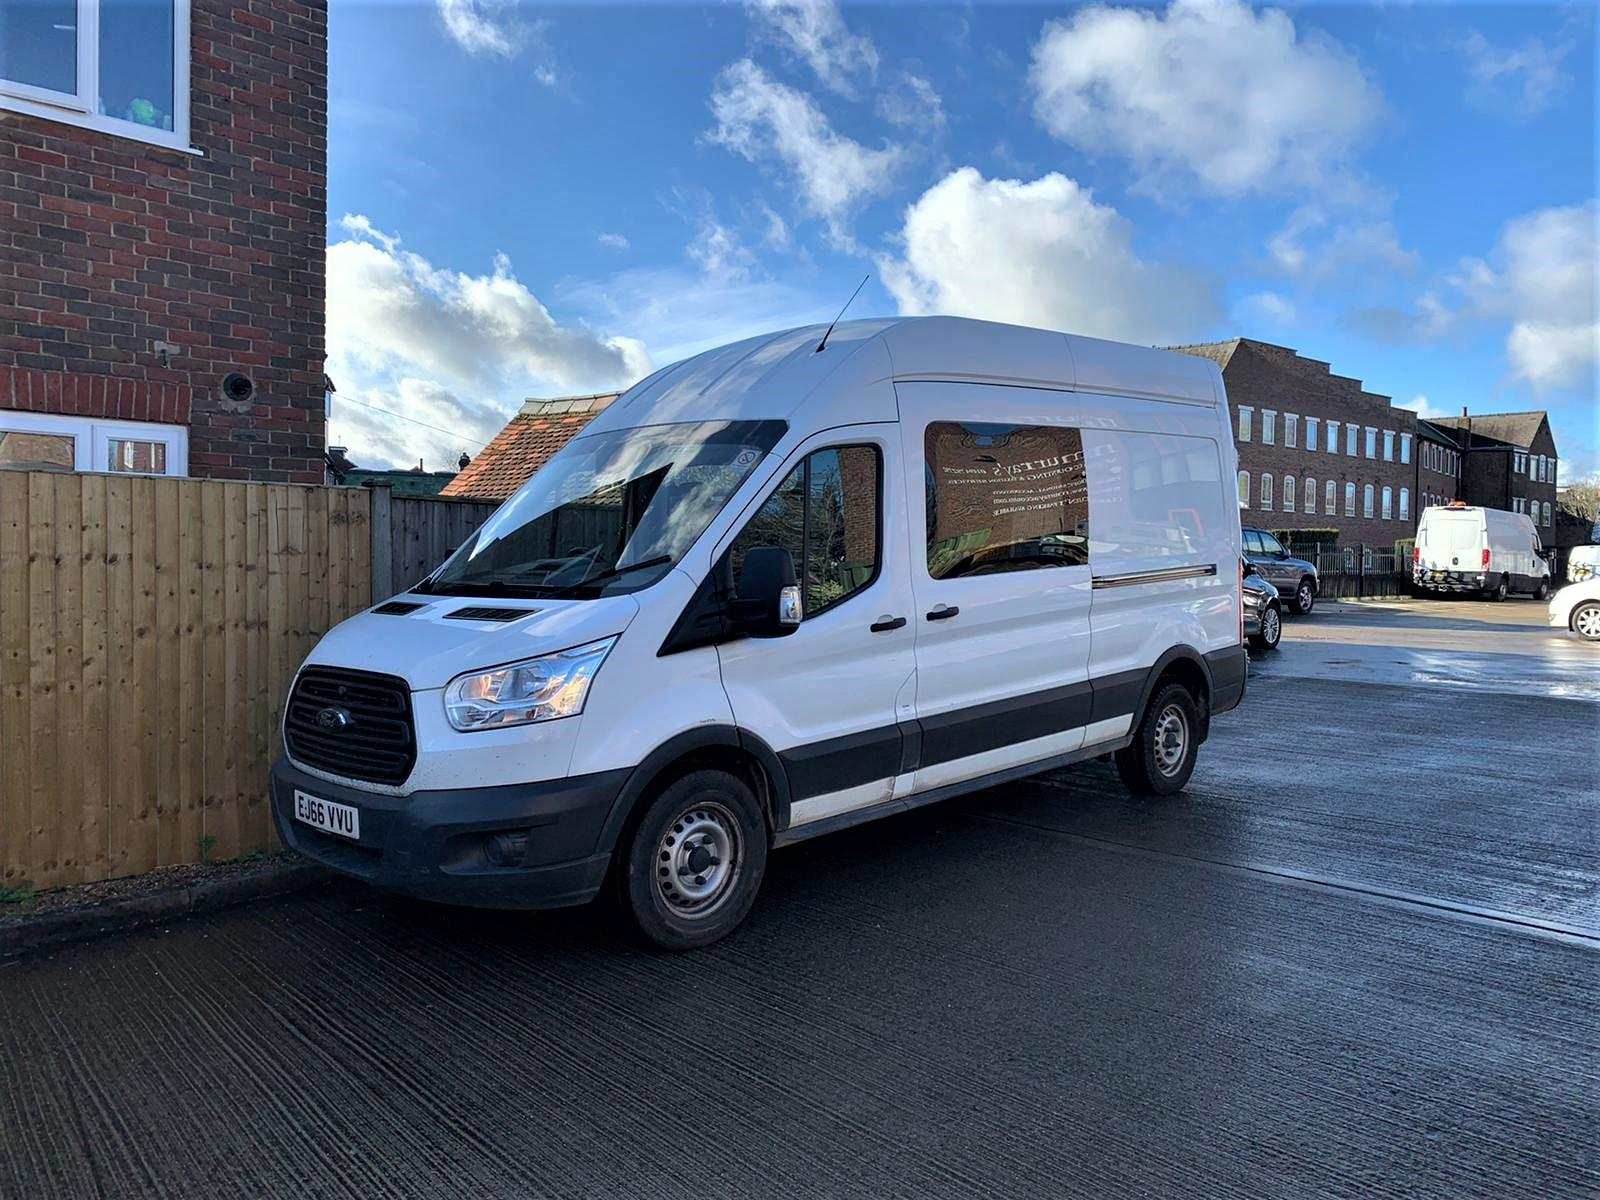 2016 (66) Ford Transit 2.2 TDCi 125ps H3 Van WELFARE For Sale In Chesham, Buckinghamshire